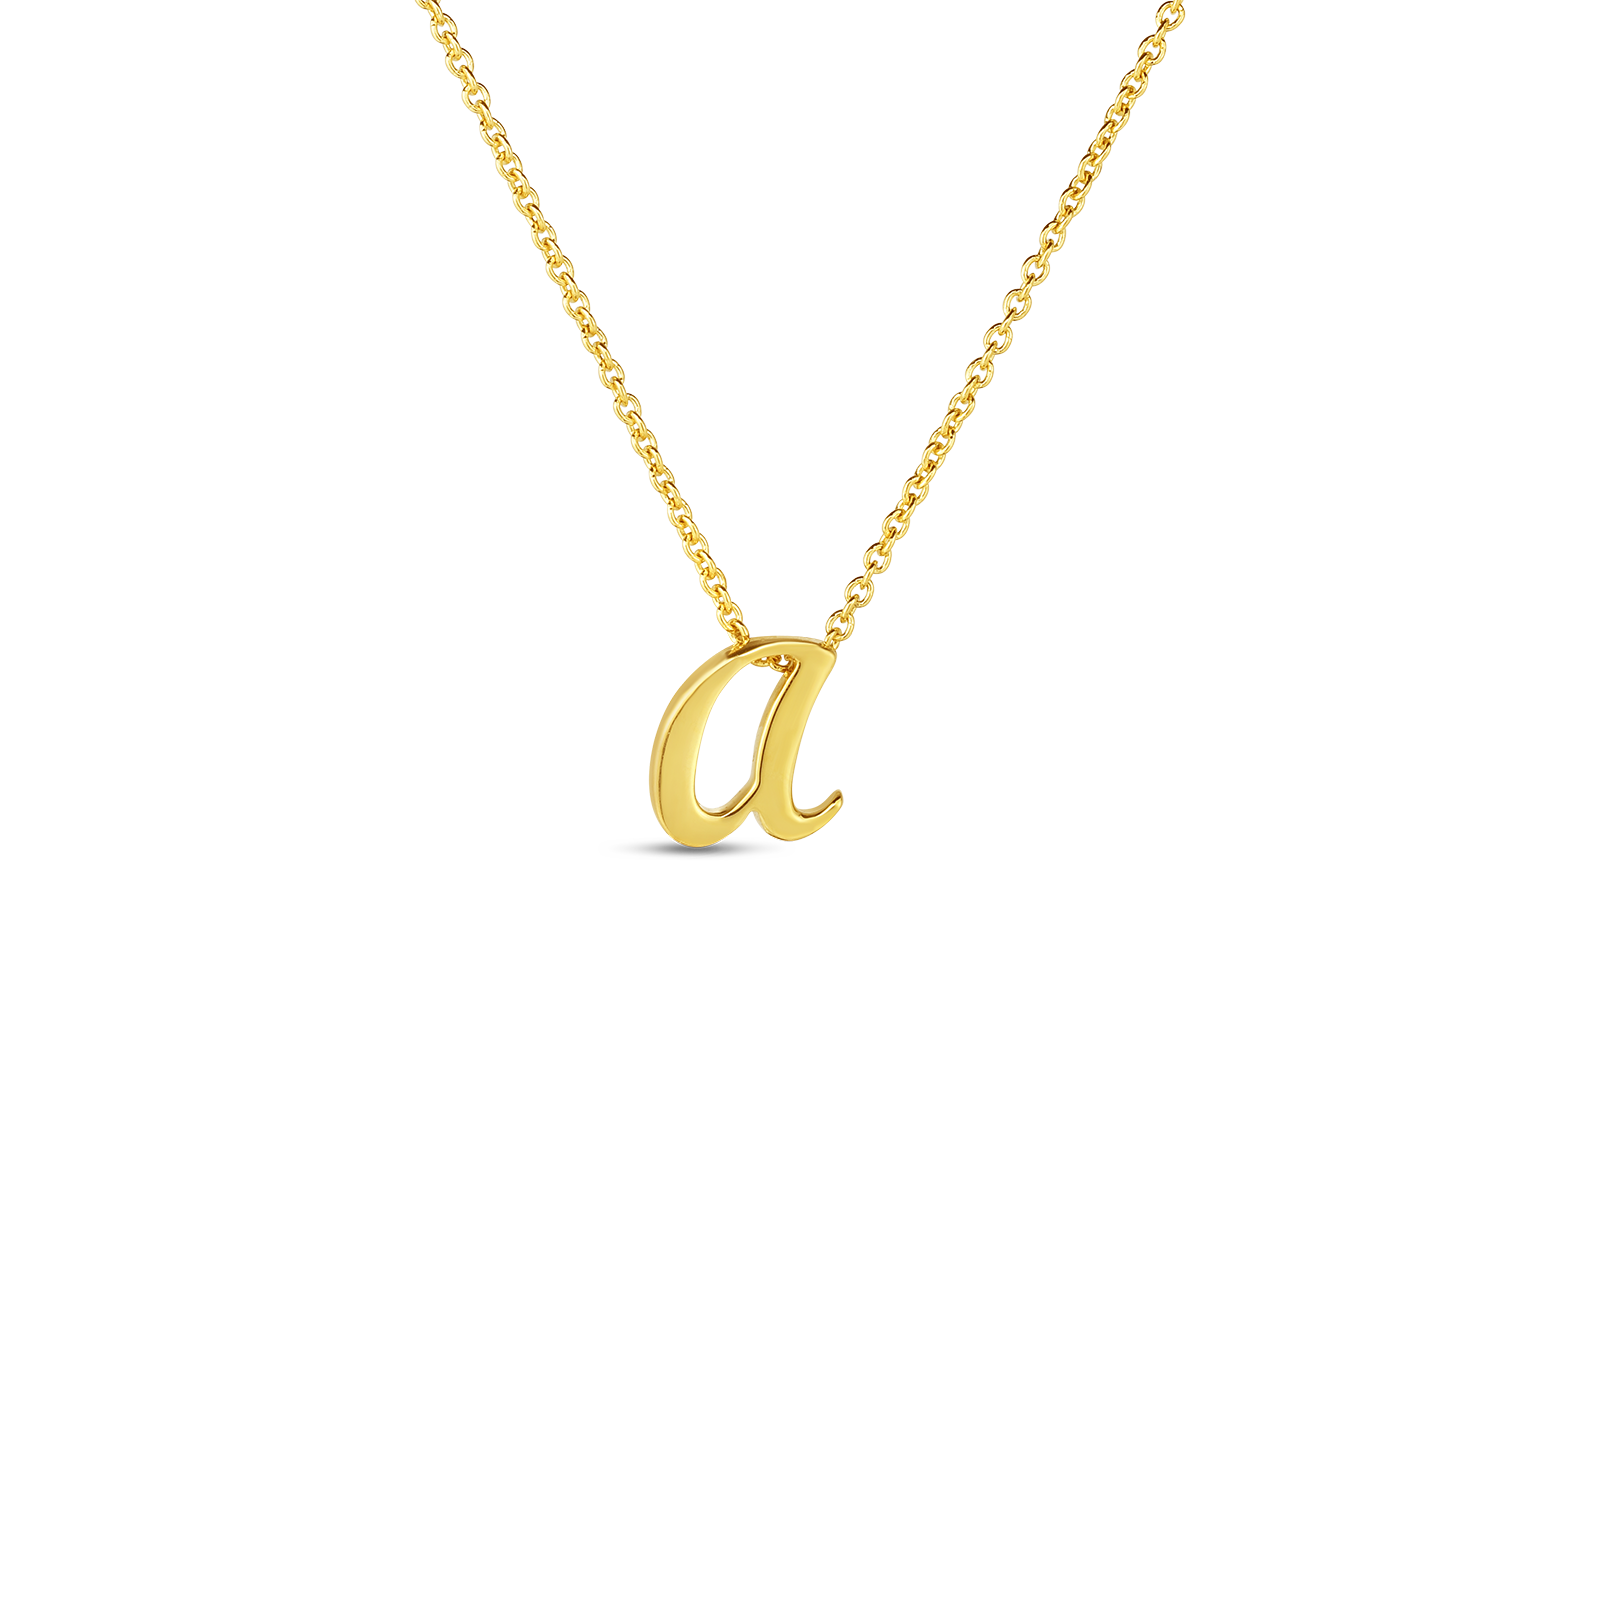 18k Small Script Initial 'a' Pendant On Chain